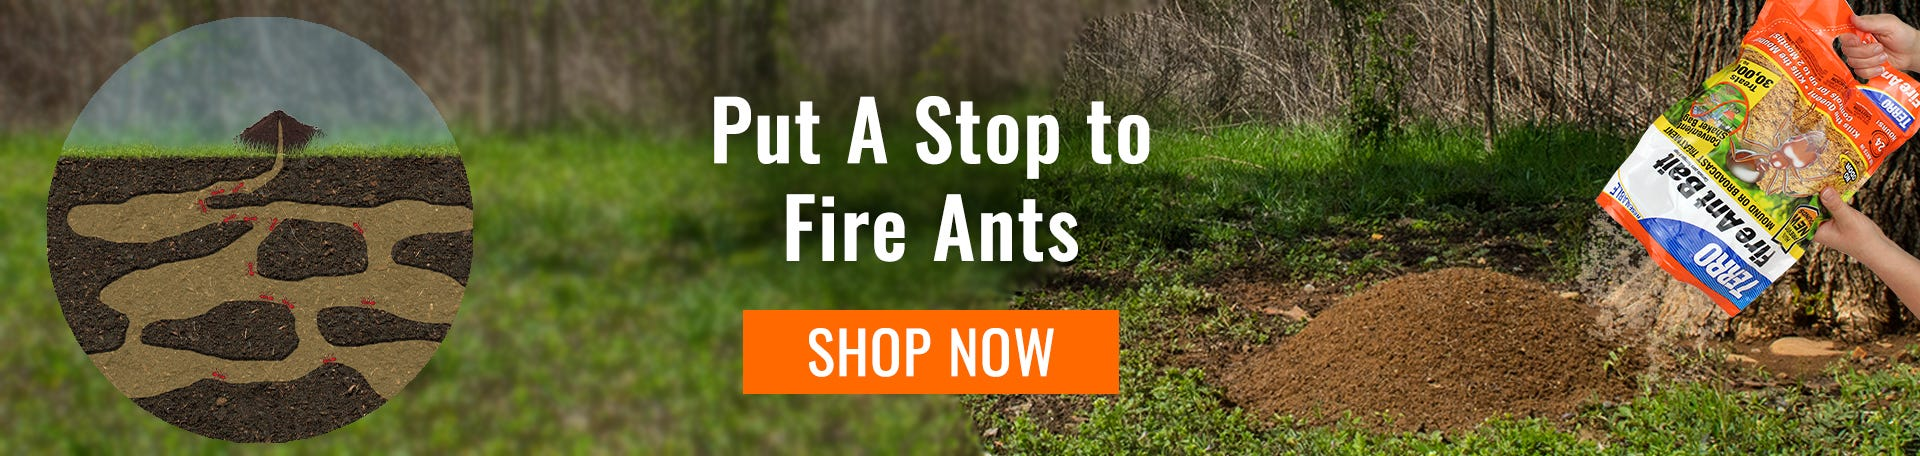 fire ant mound being treated with TERRO Fire Ant Bait